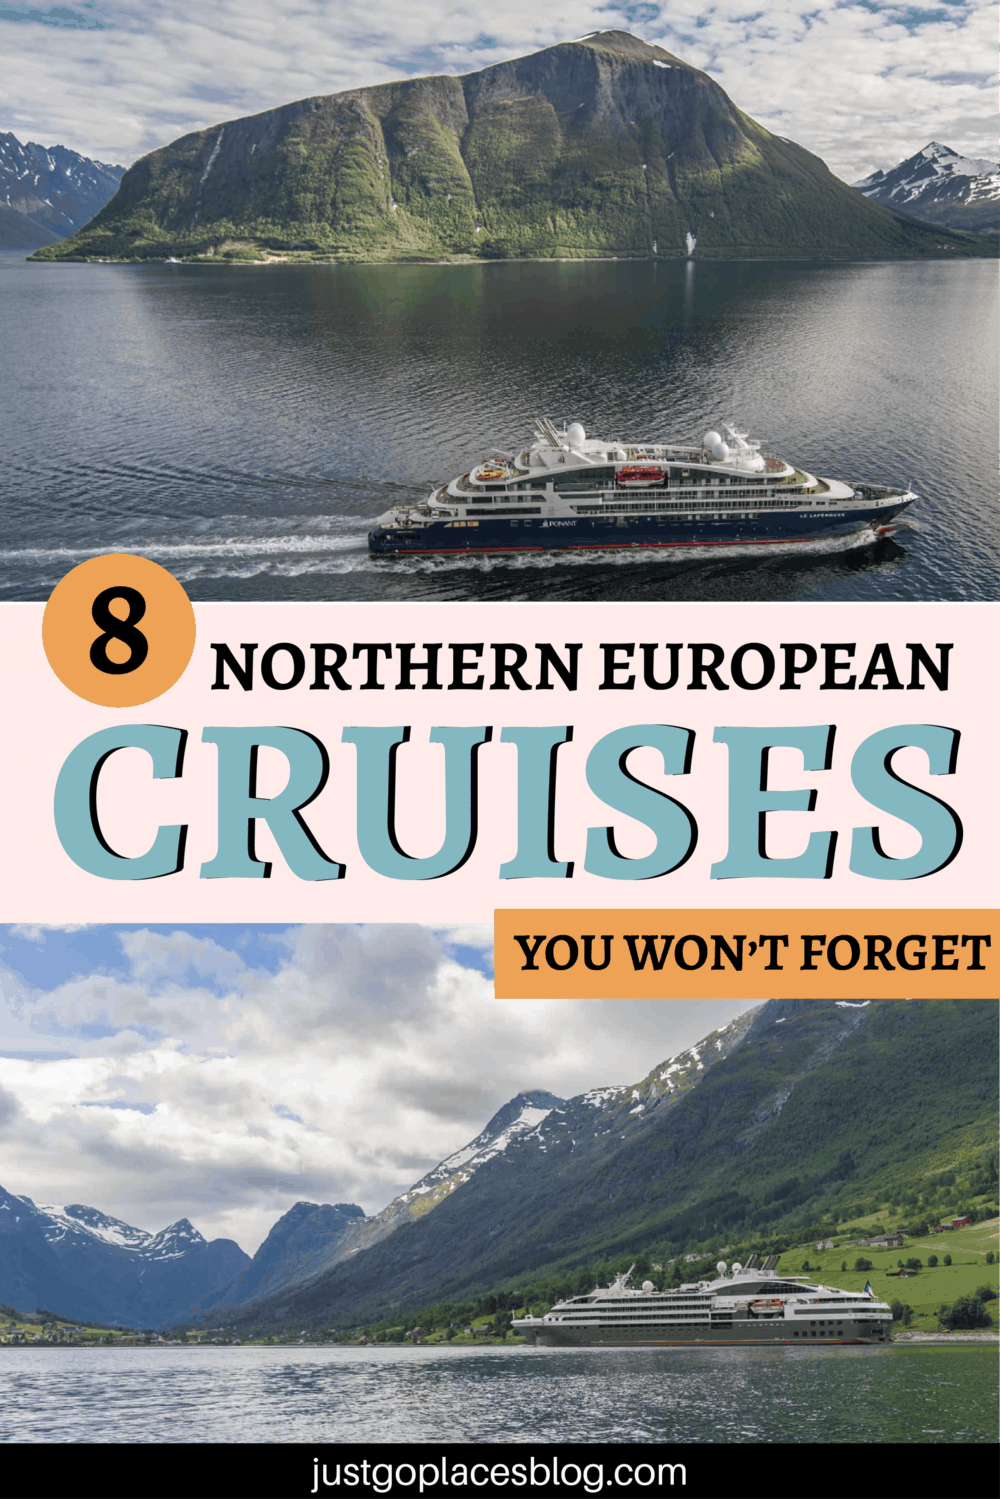 8 Northern European Cruises